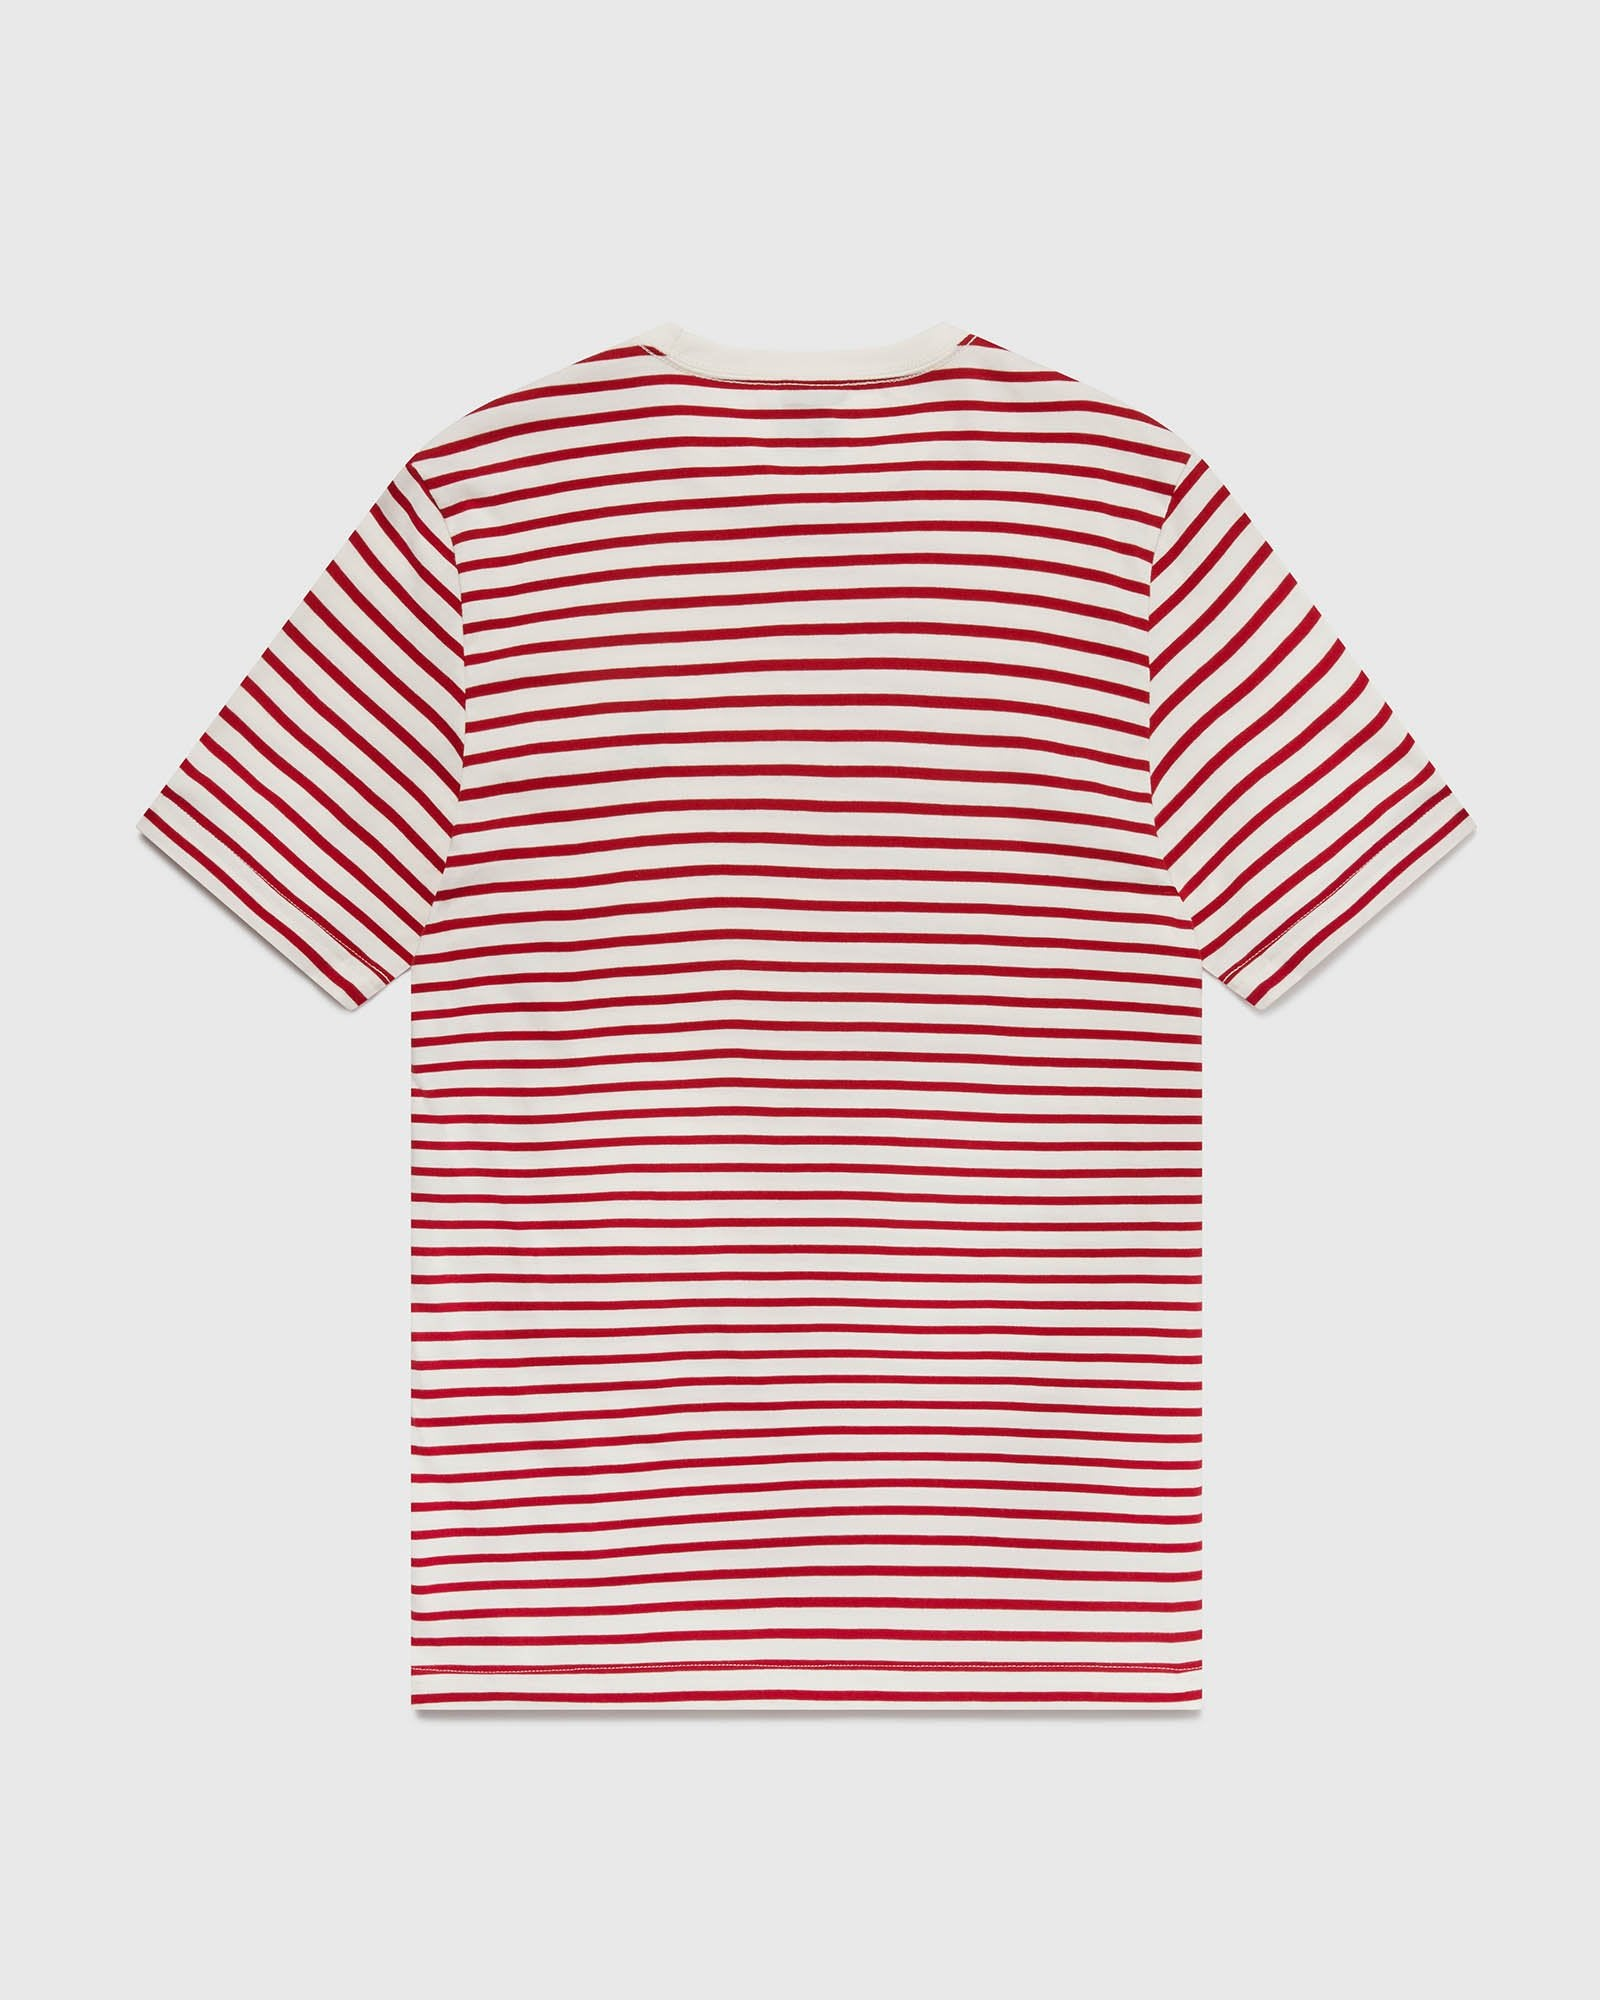 NAUTICAL STRIPE T-SHIRT - RED/CREAM IMAGE #3